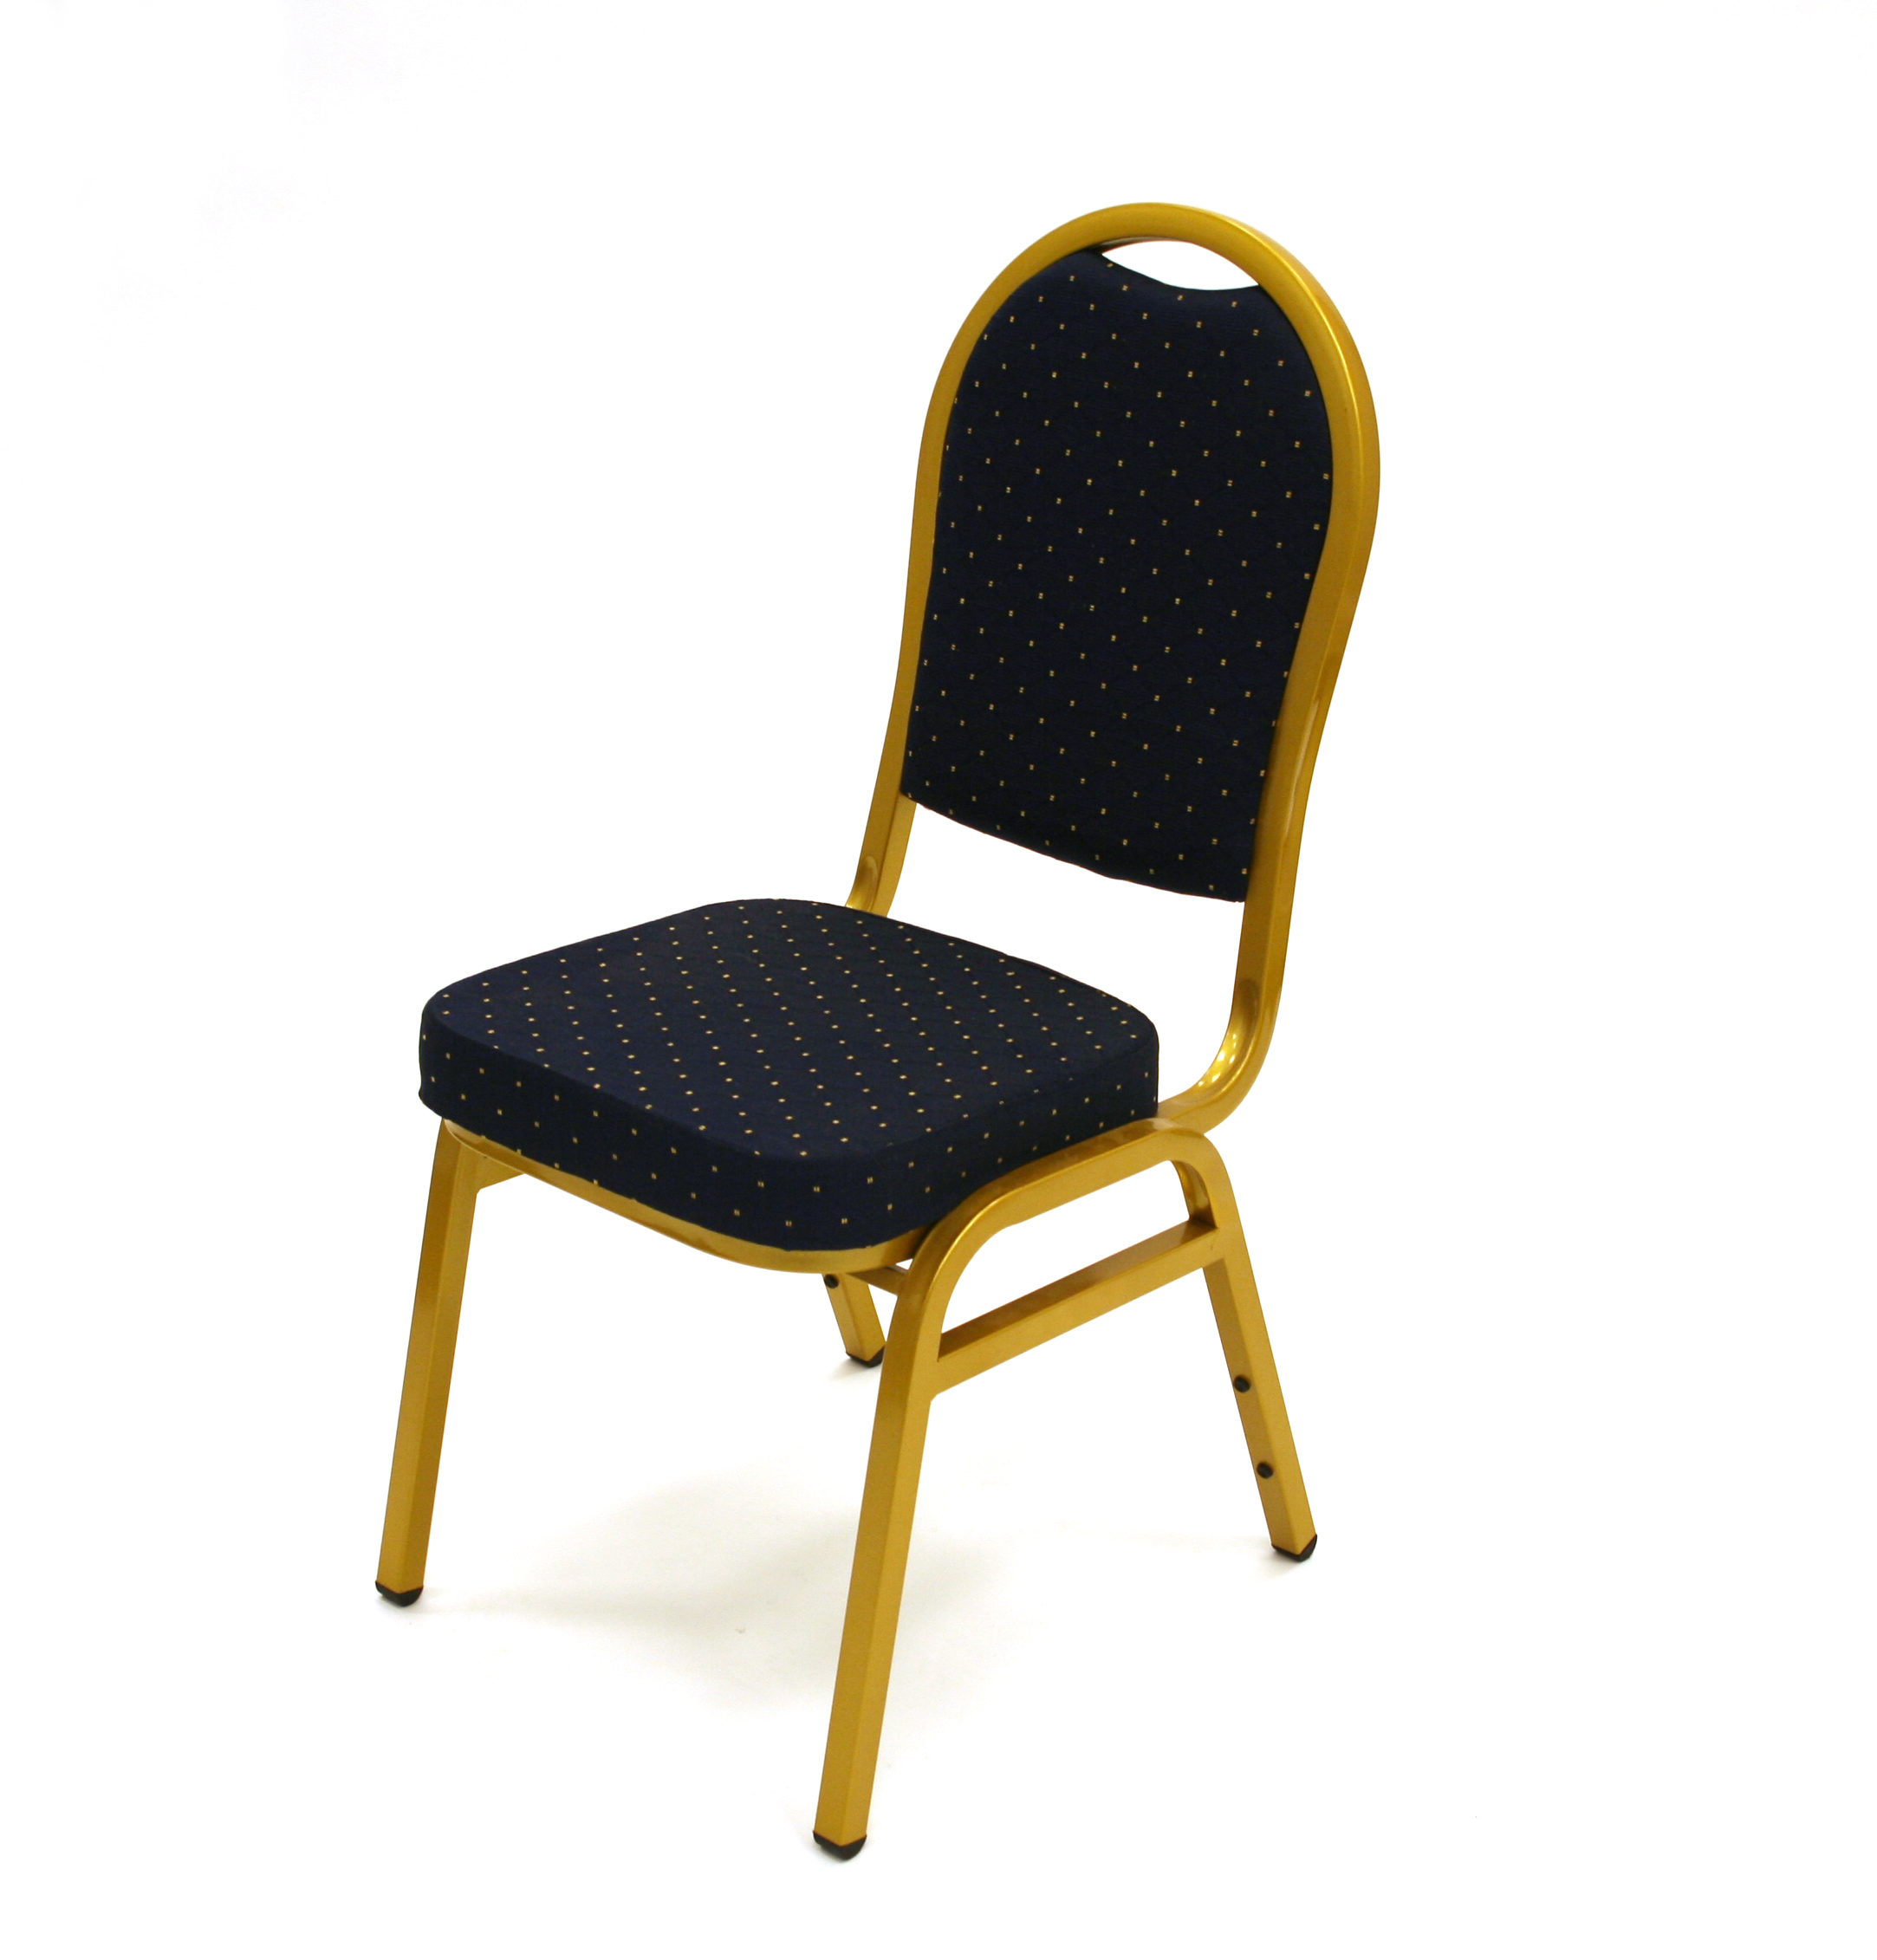 Blue Banqueting Chair with Gold Frame - Premium - BE Furniture Sales